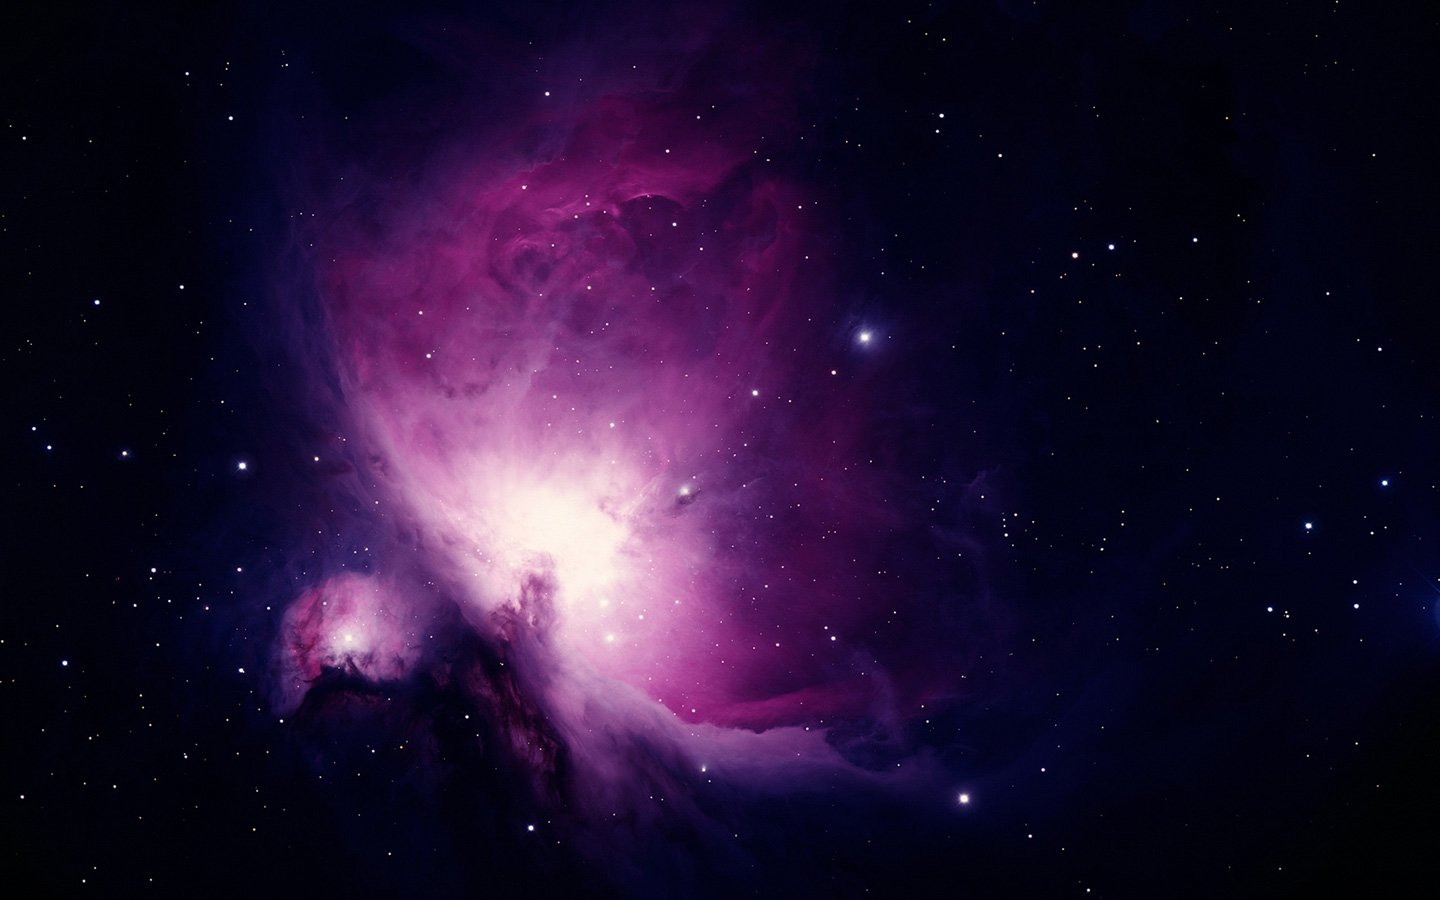 Orion Nebula Wallpaper 2332 Hd Wallpapers in Space   Imagescicom 1440x900